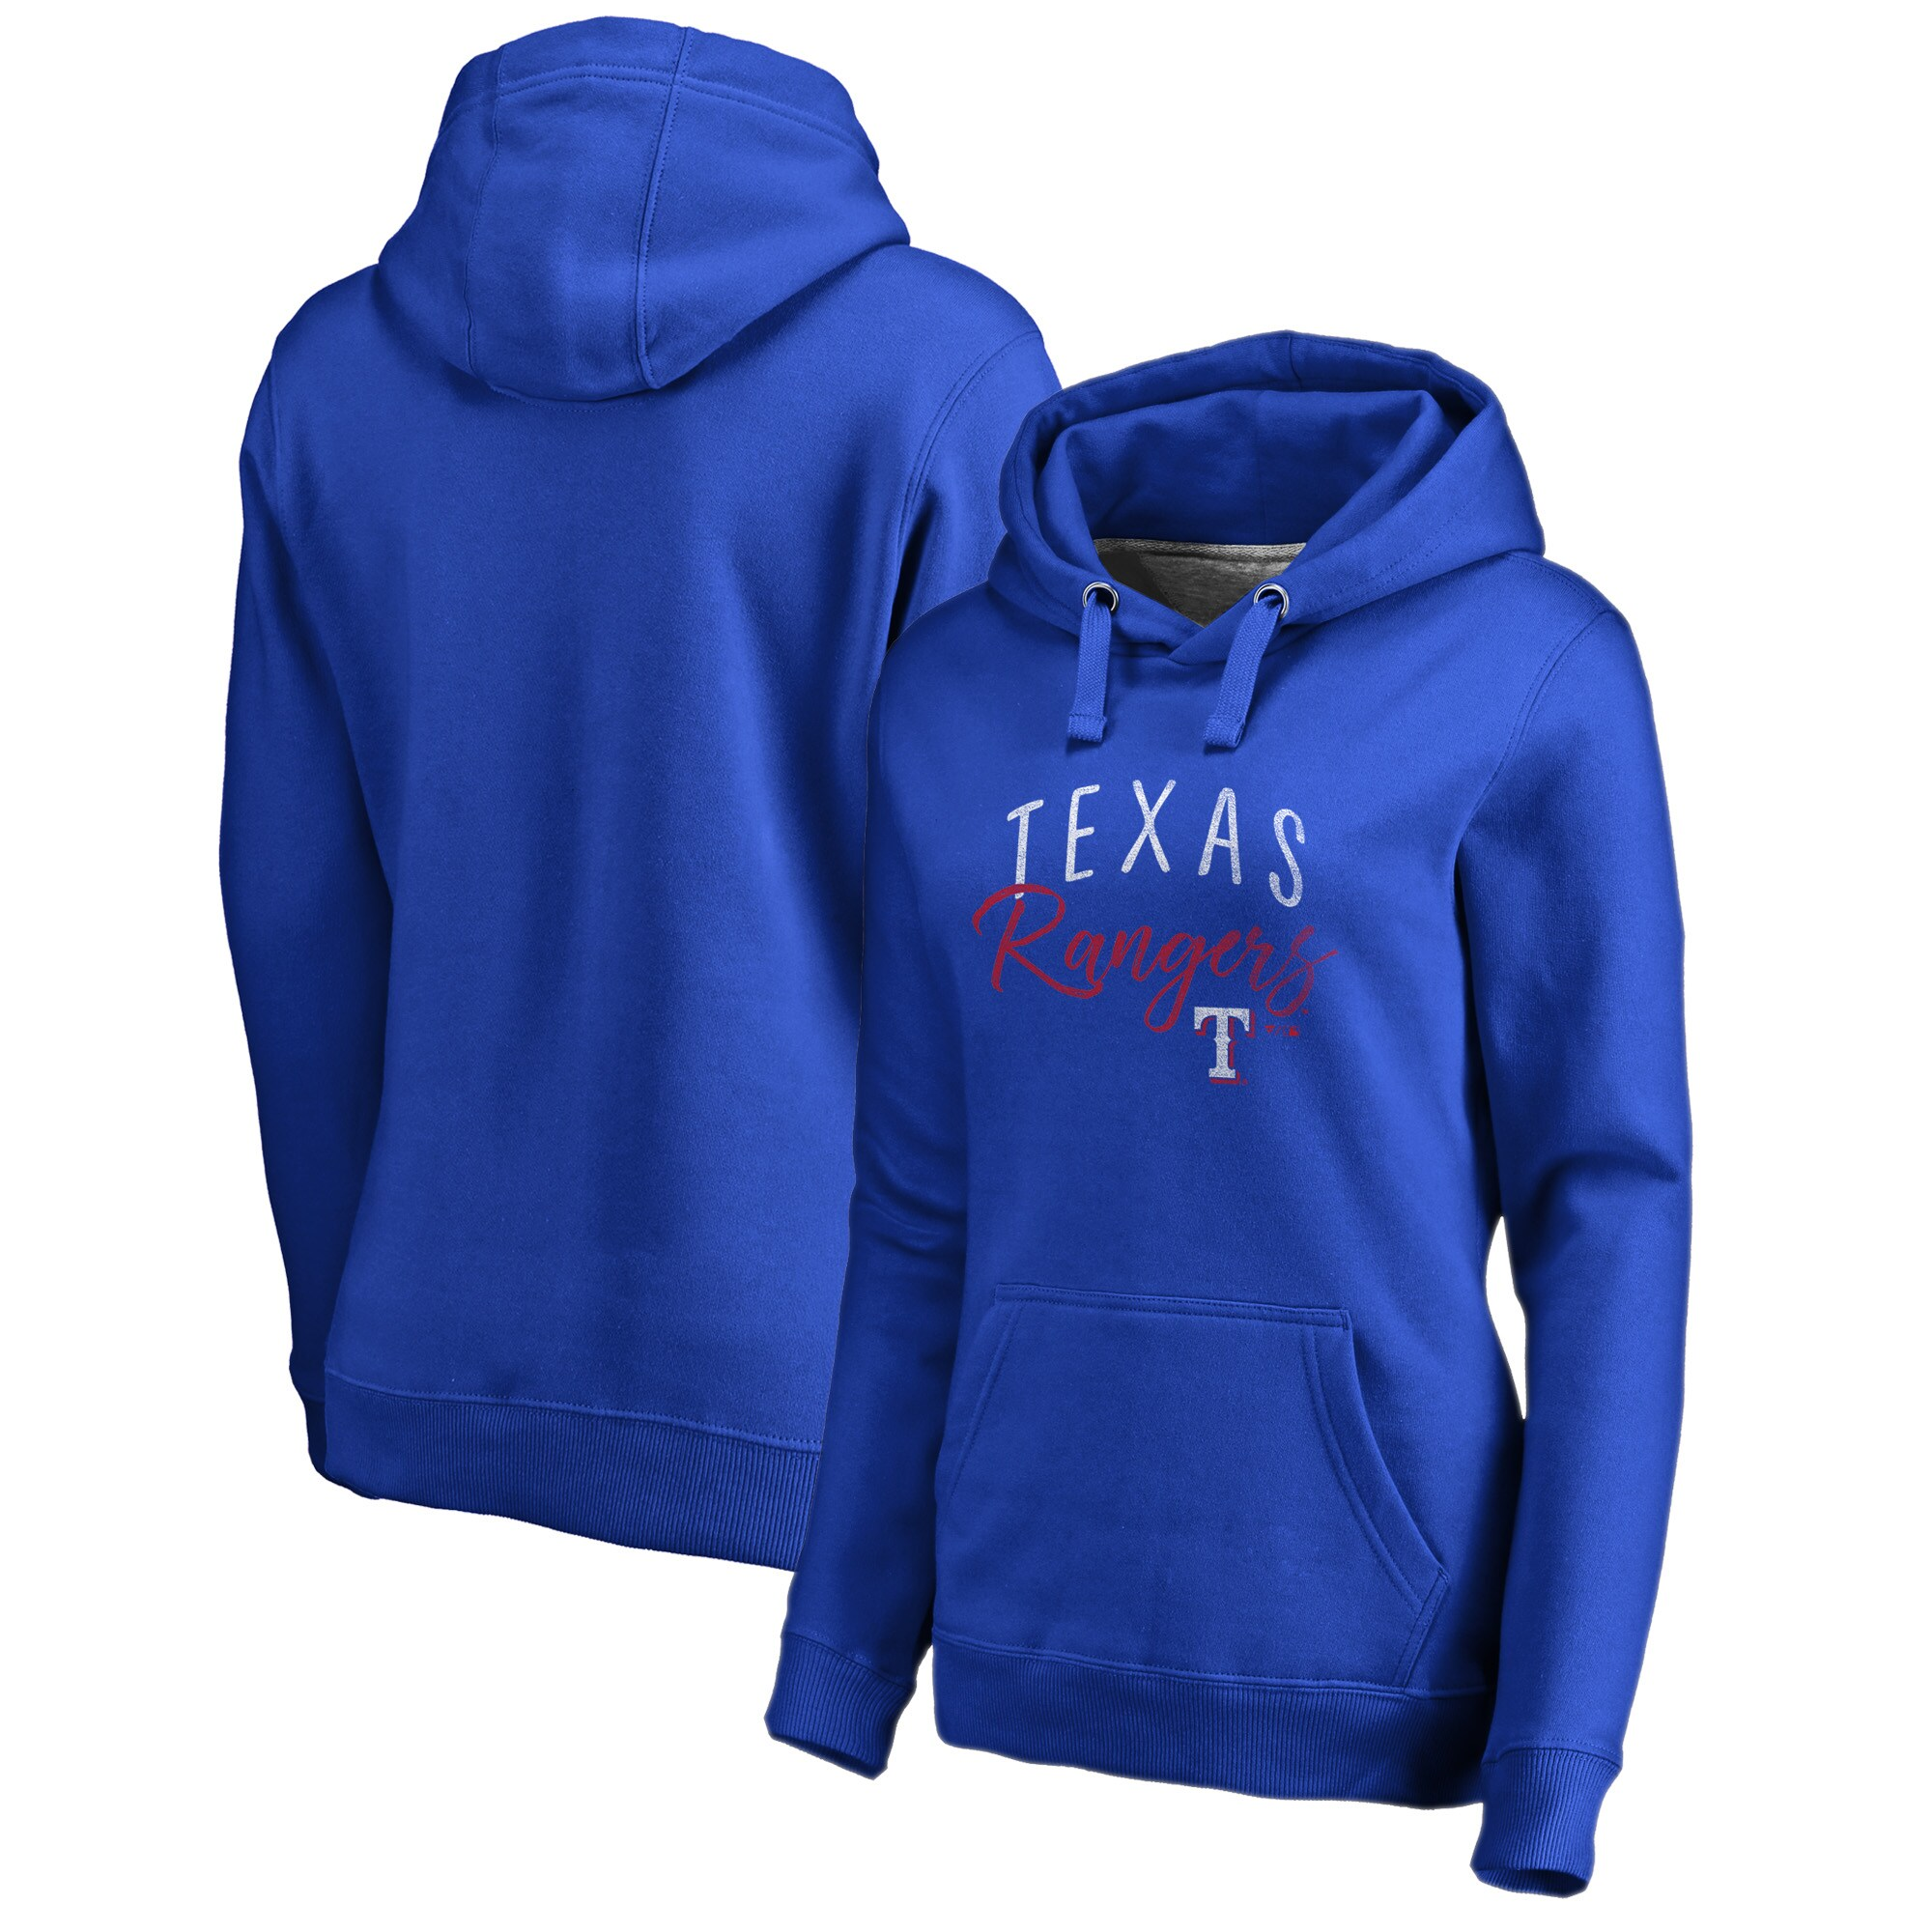 Texas Rangers Fanatics Branded Women's Plus Size Graceful Pullover Hoodie - Royal